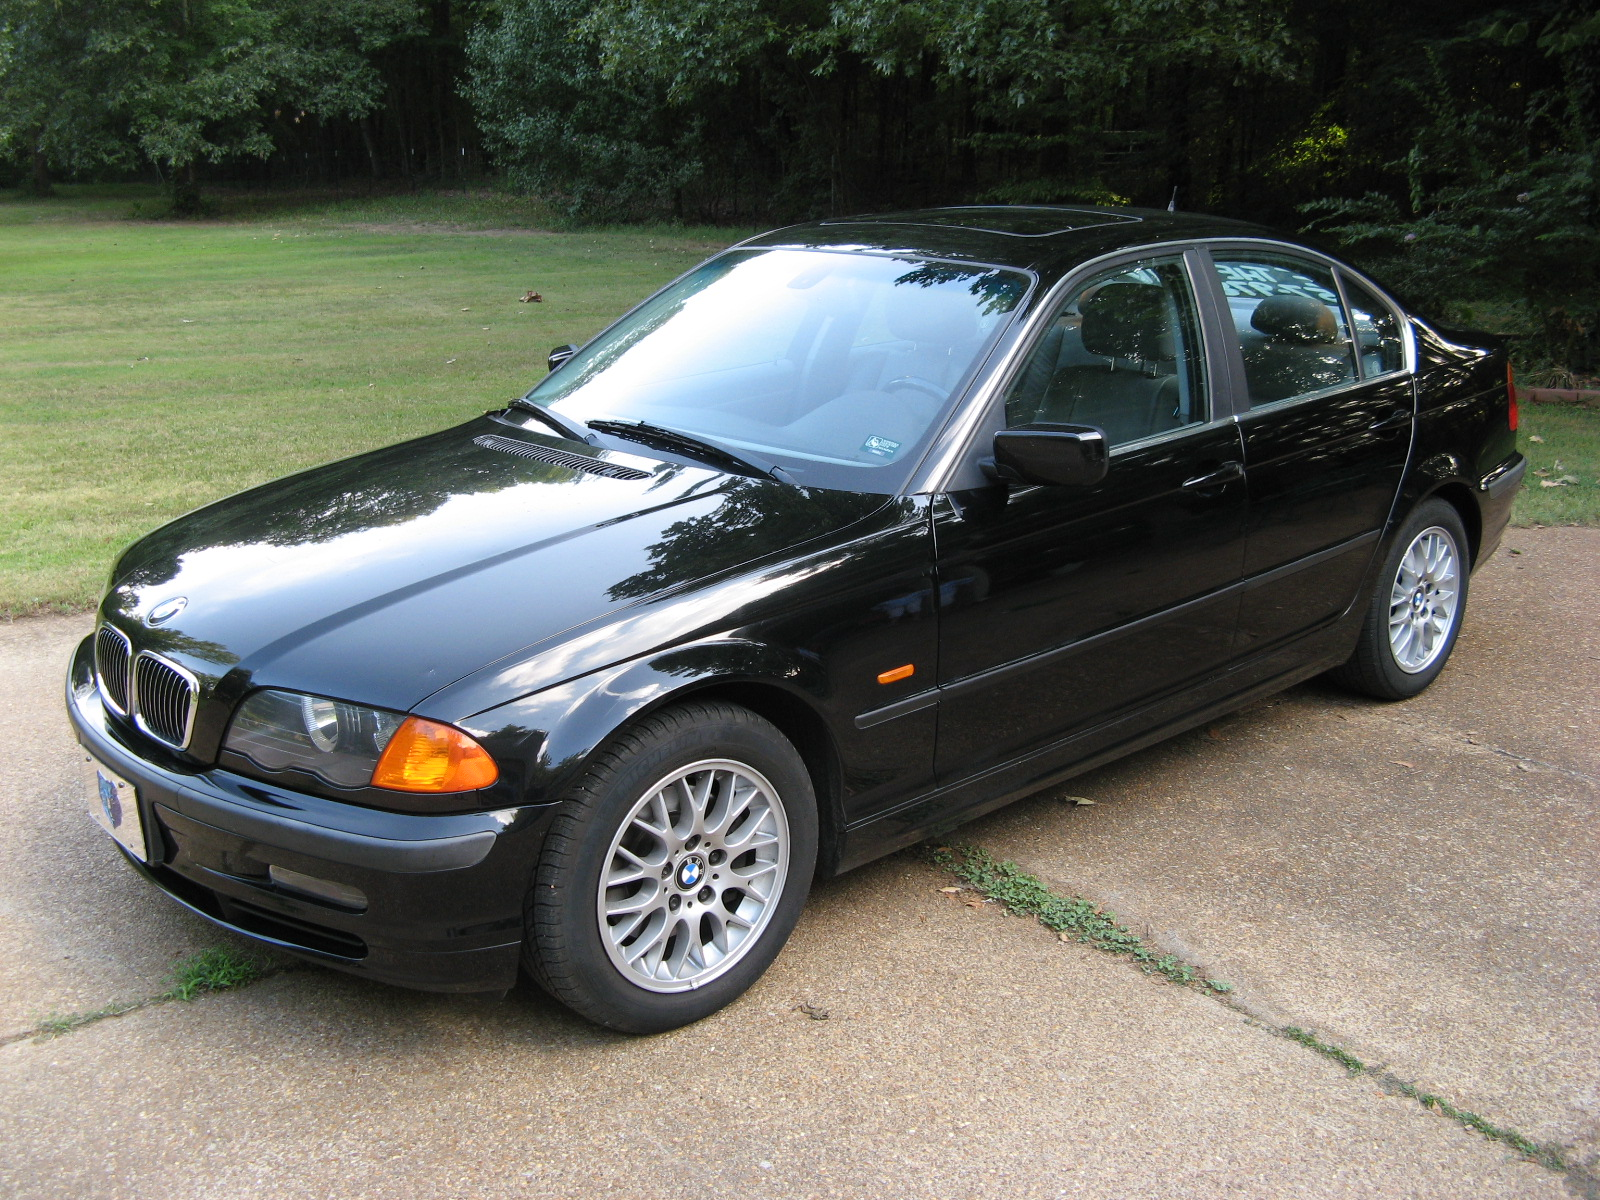 BMW Review Amazing Pictures And Images Look At The Car - Bmw 328 series